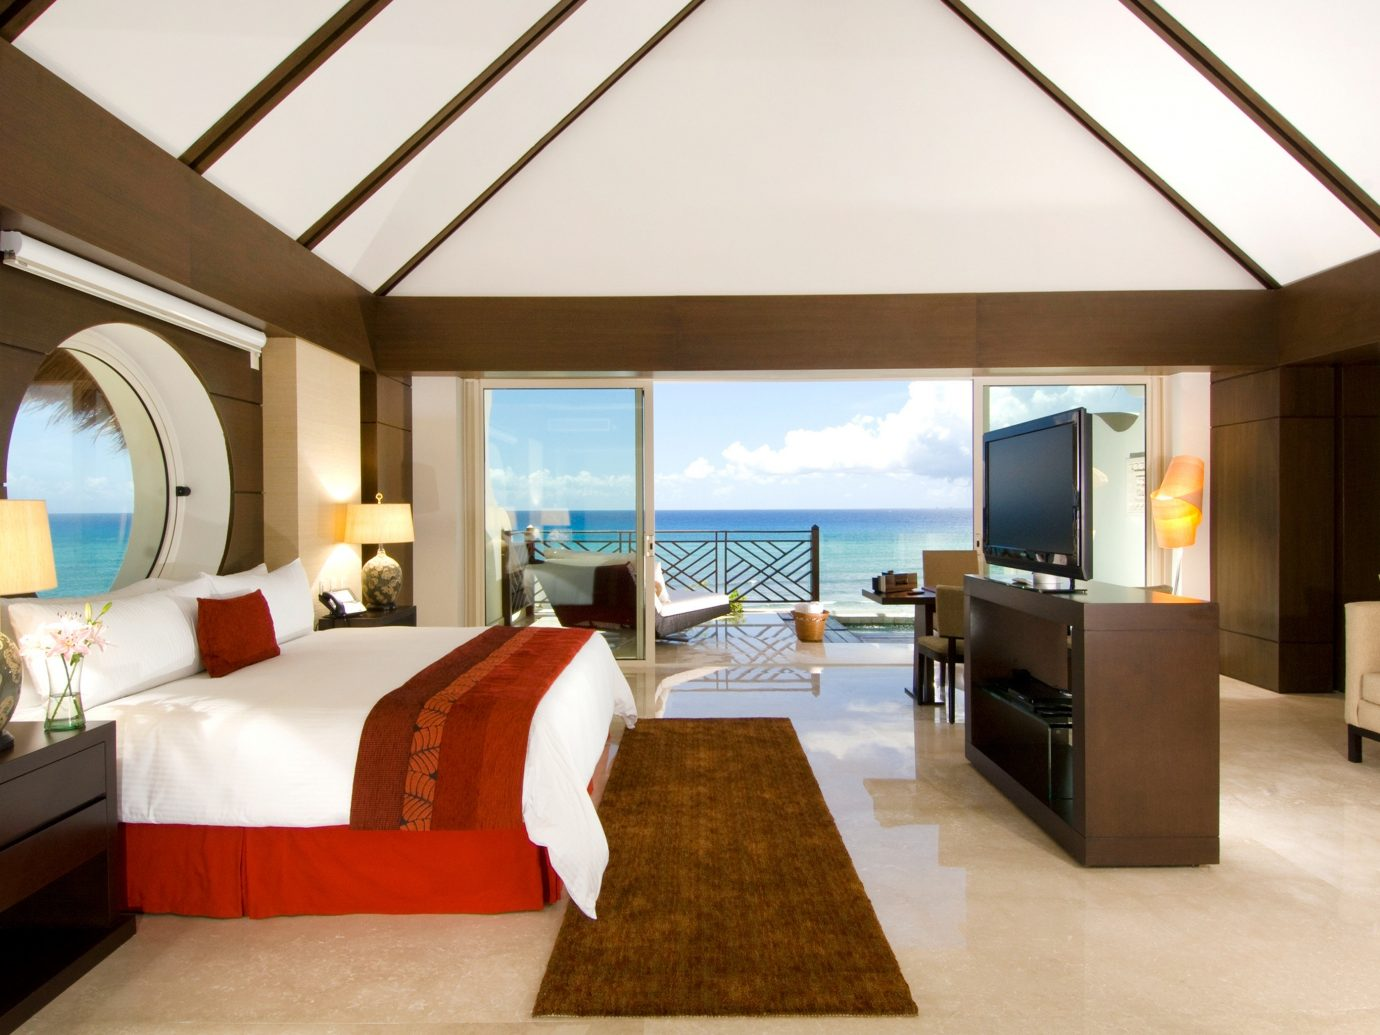 All-Inclusive Resorts Balcony Beach Bedroom Elegant Family Travel Hotels Luxury Modern Romance Romantic Scenic views Suite indoor floor room wall sofa bed ceiling property Living estate hotel living room Villa real estate home Resort interior design furniture cottage Design condominium apartment area